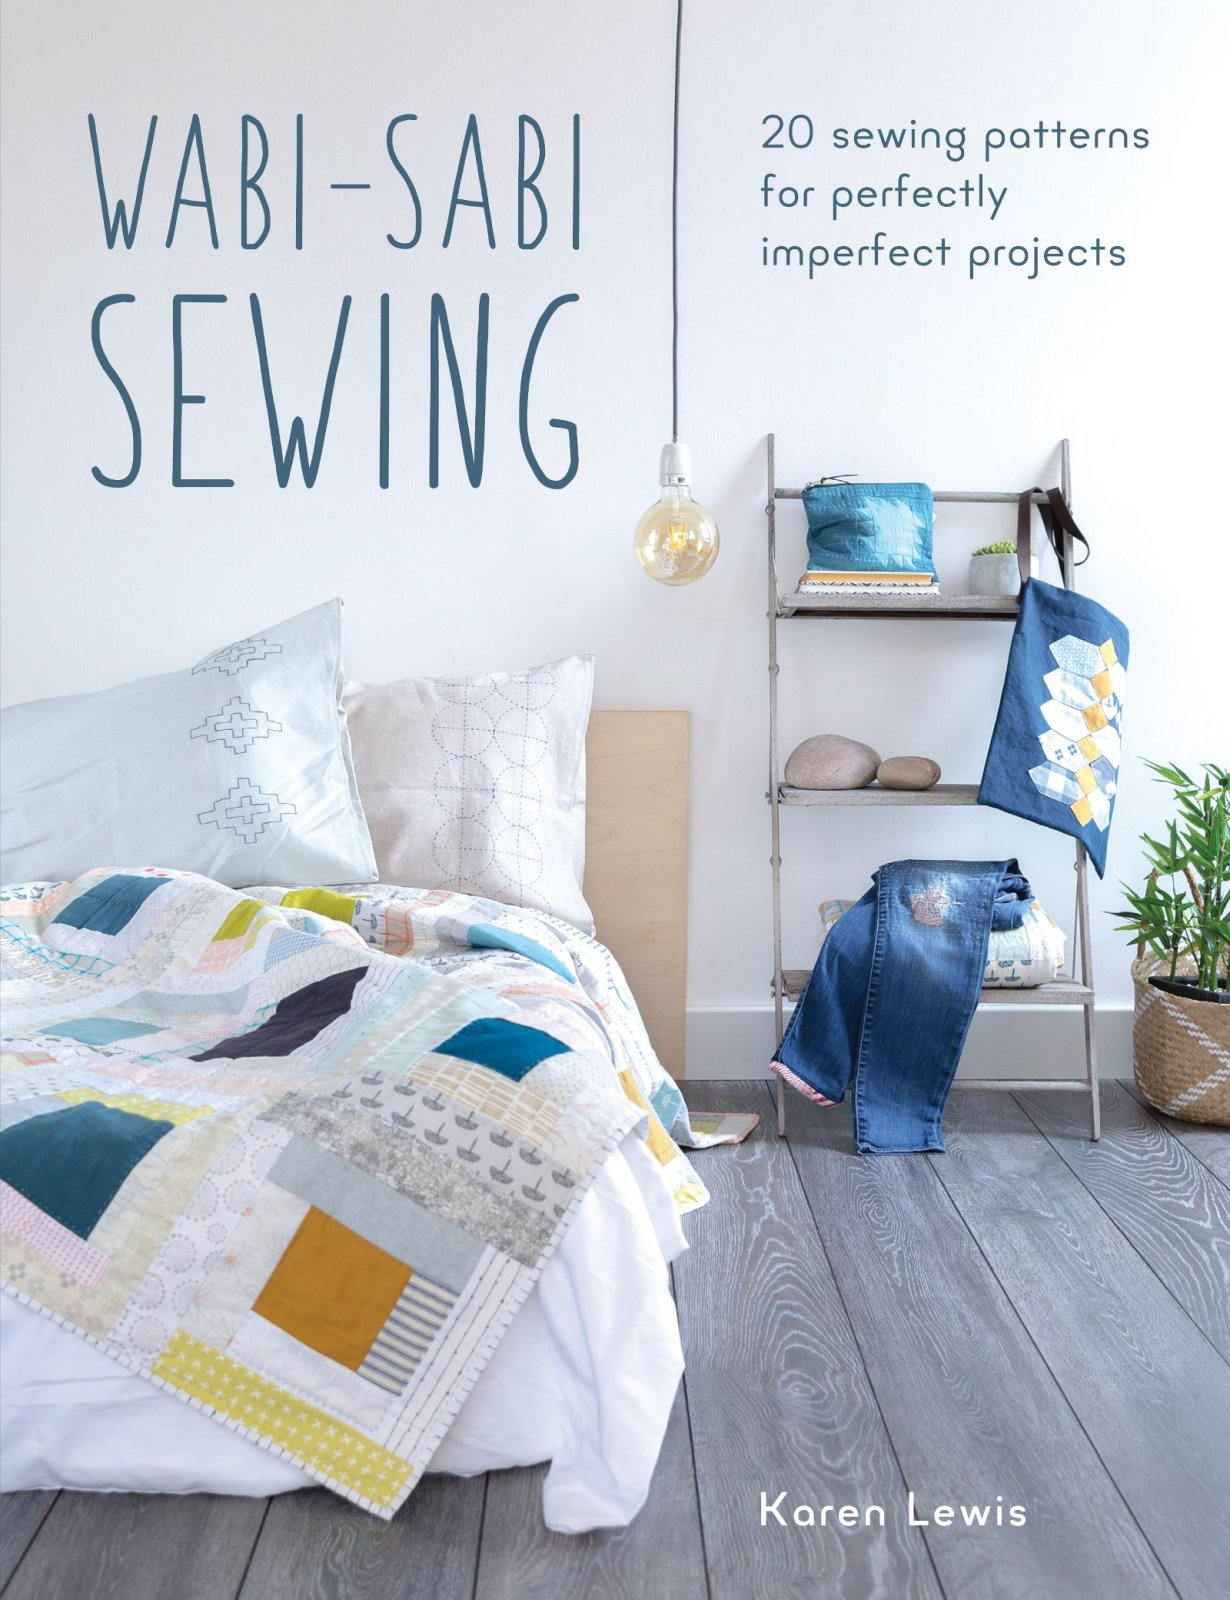 Wabi-Sabi Sewing by Karen Lewis